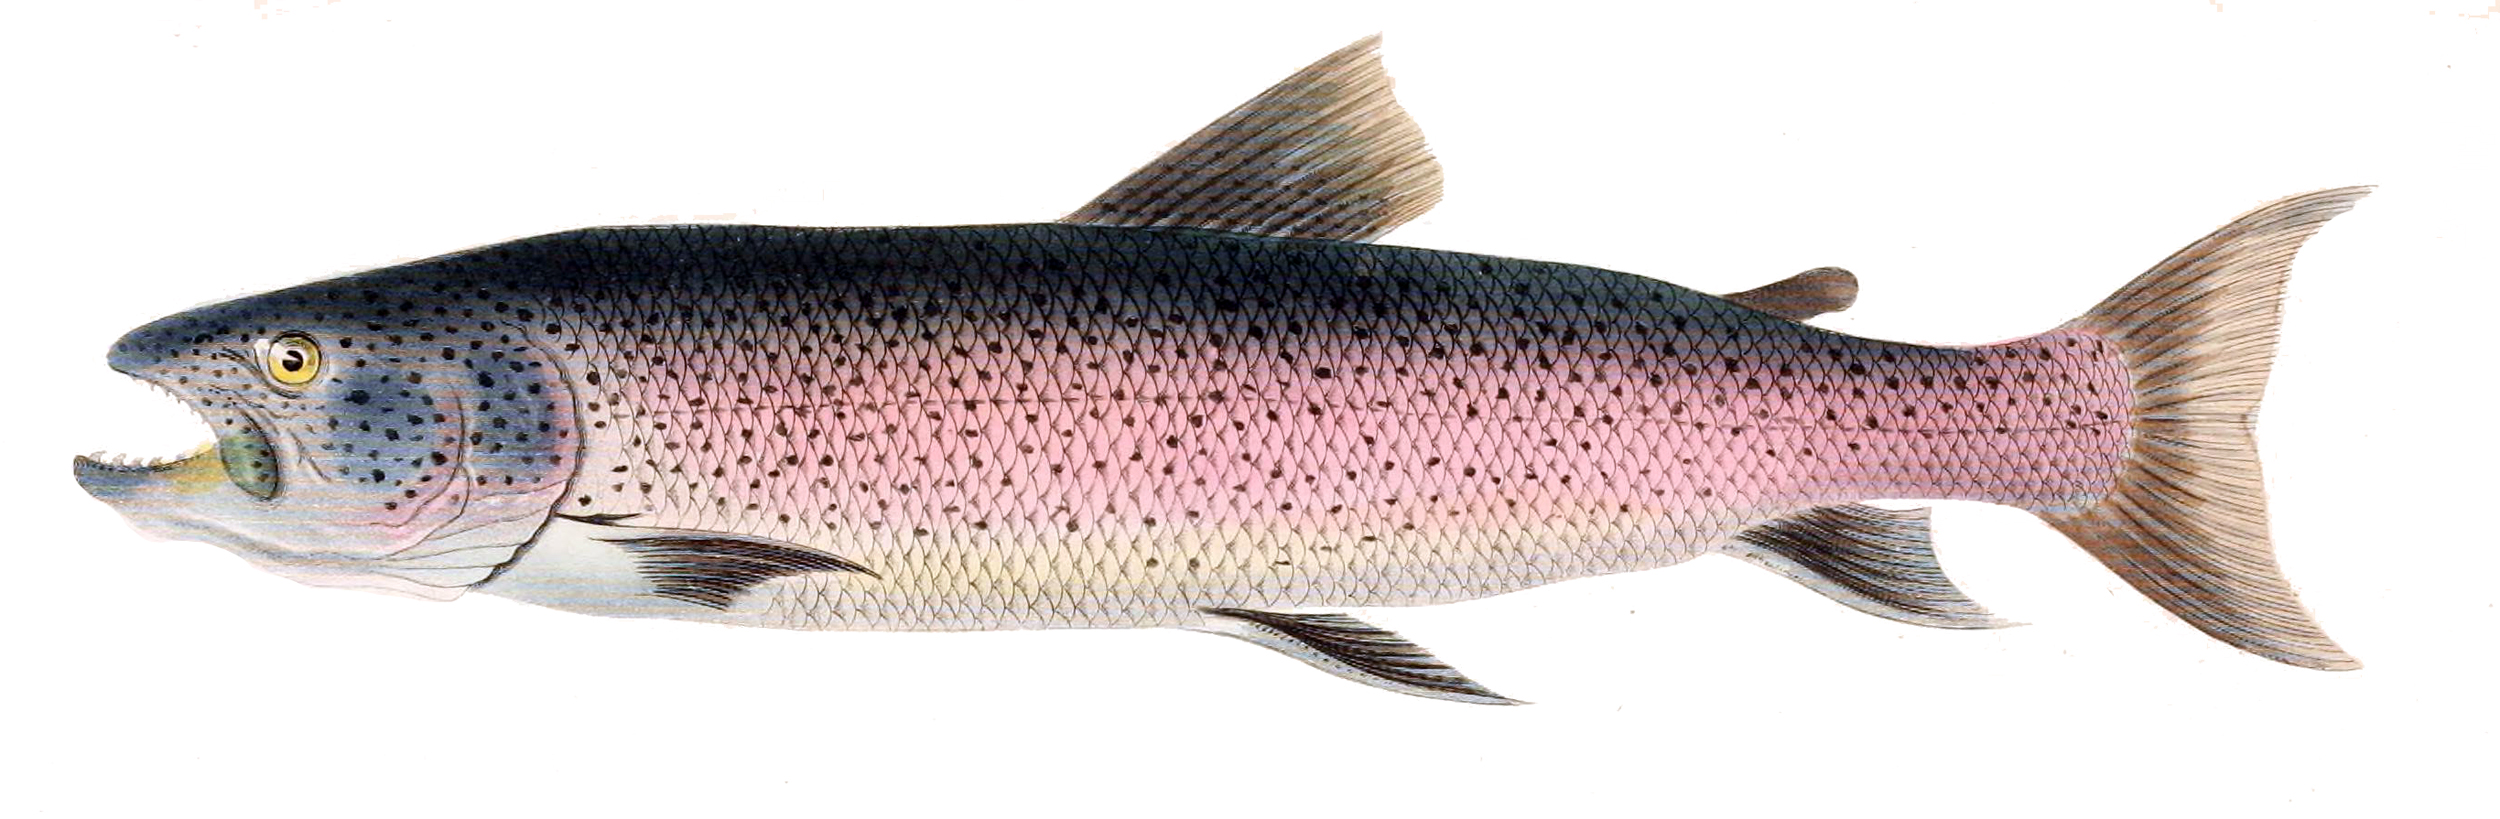 Five reasons you should stop eating salmon meatonomic for Salmon fish pictures